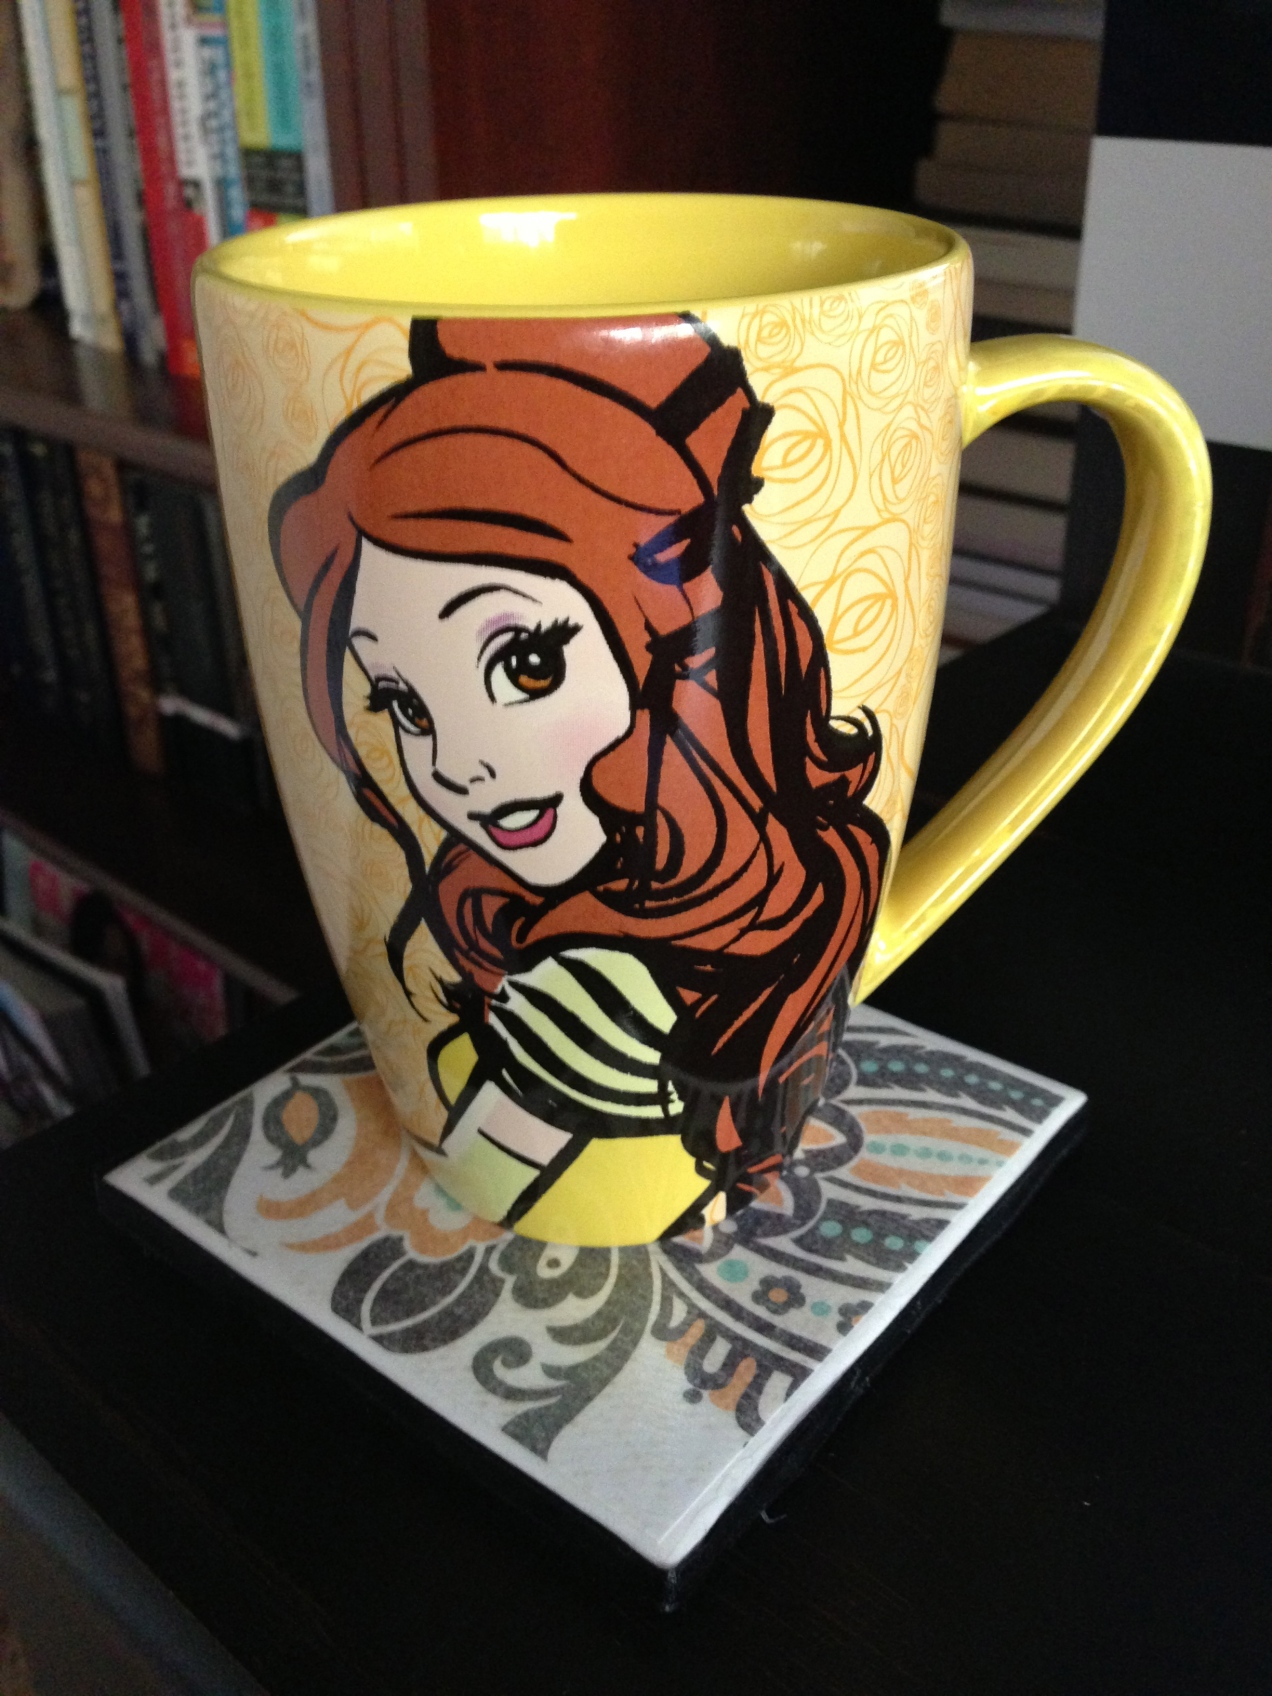 Belle mug and books